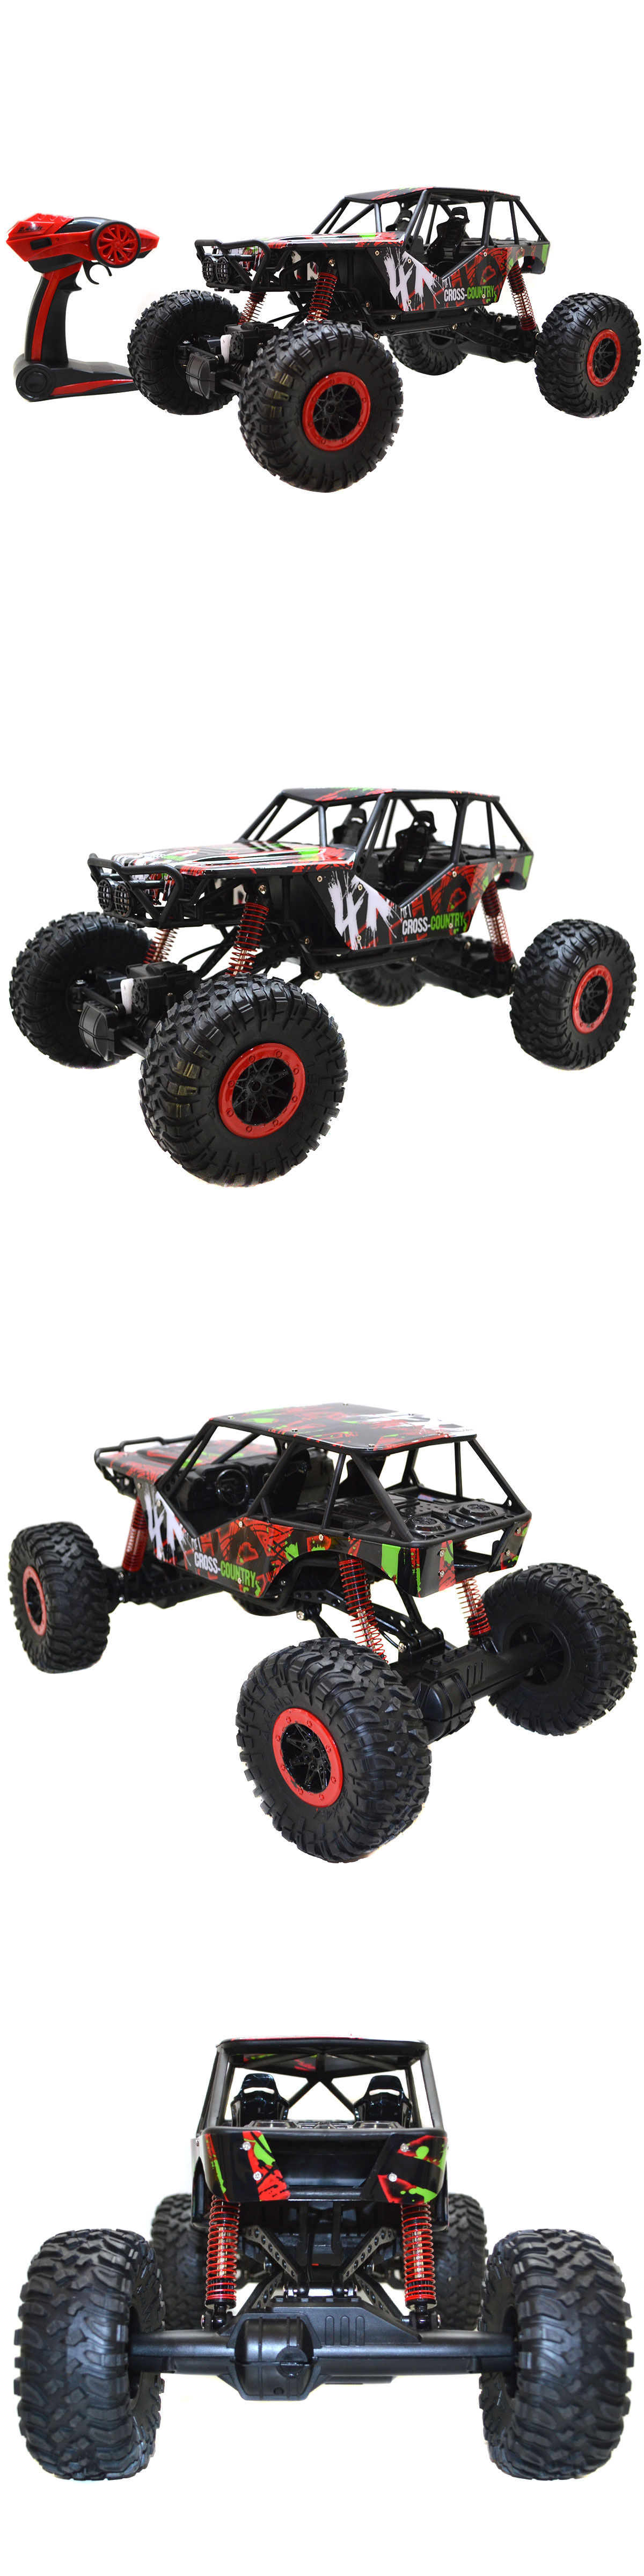 Cars Trucks and Motorcycles 182183 1 10 Scale 2.4Ghz 4